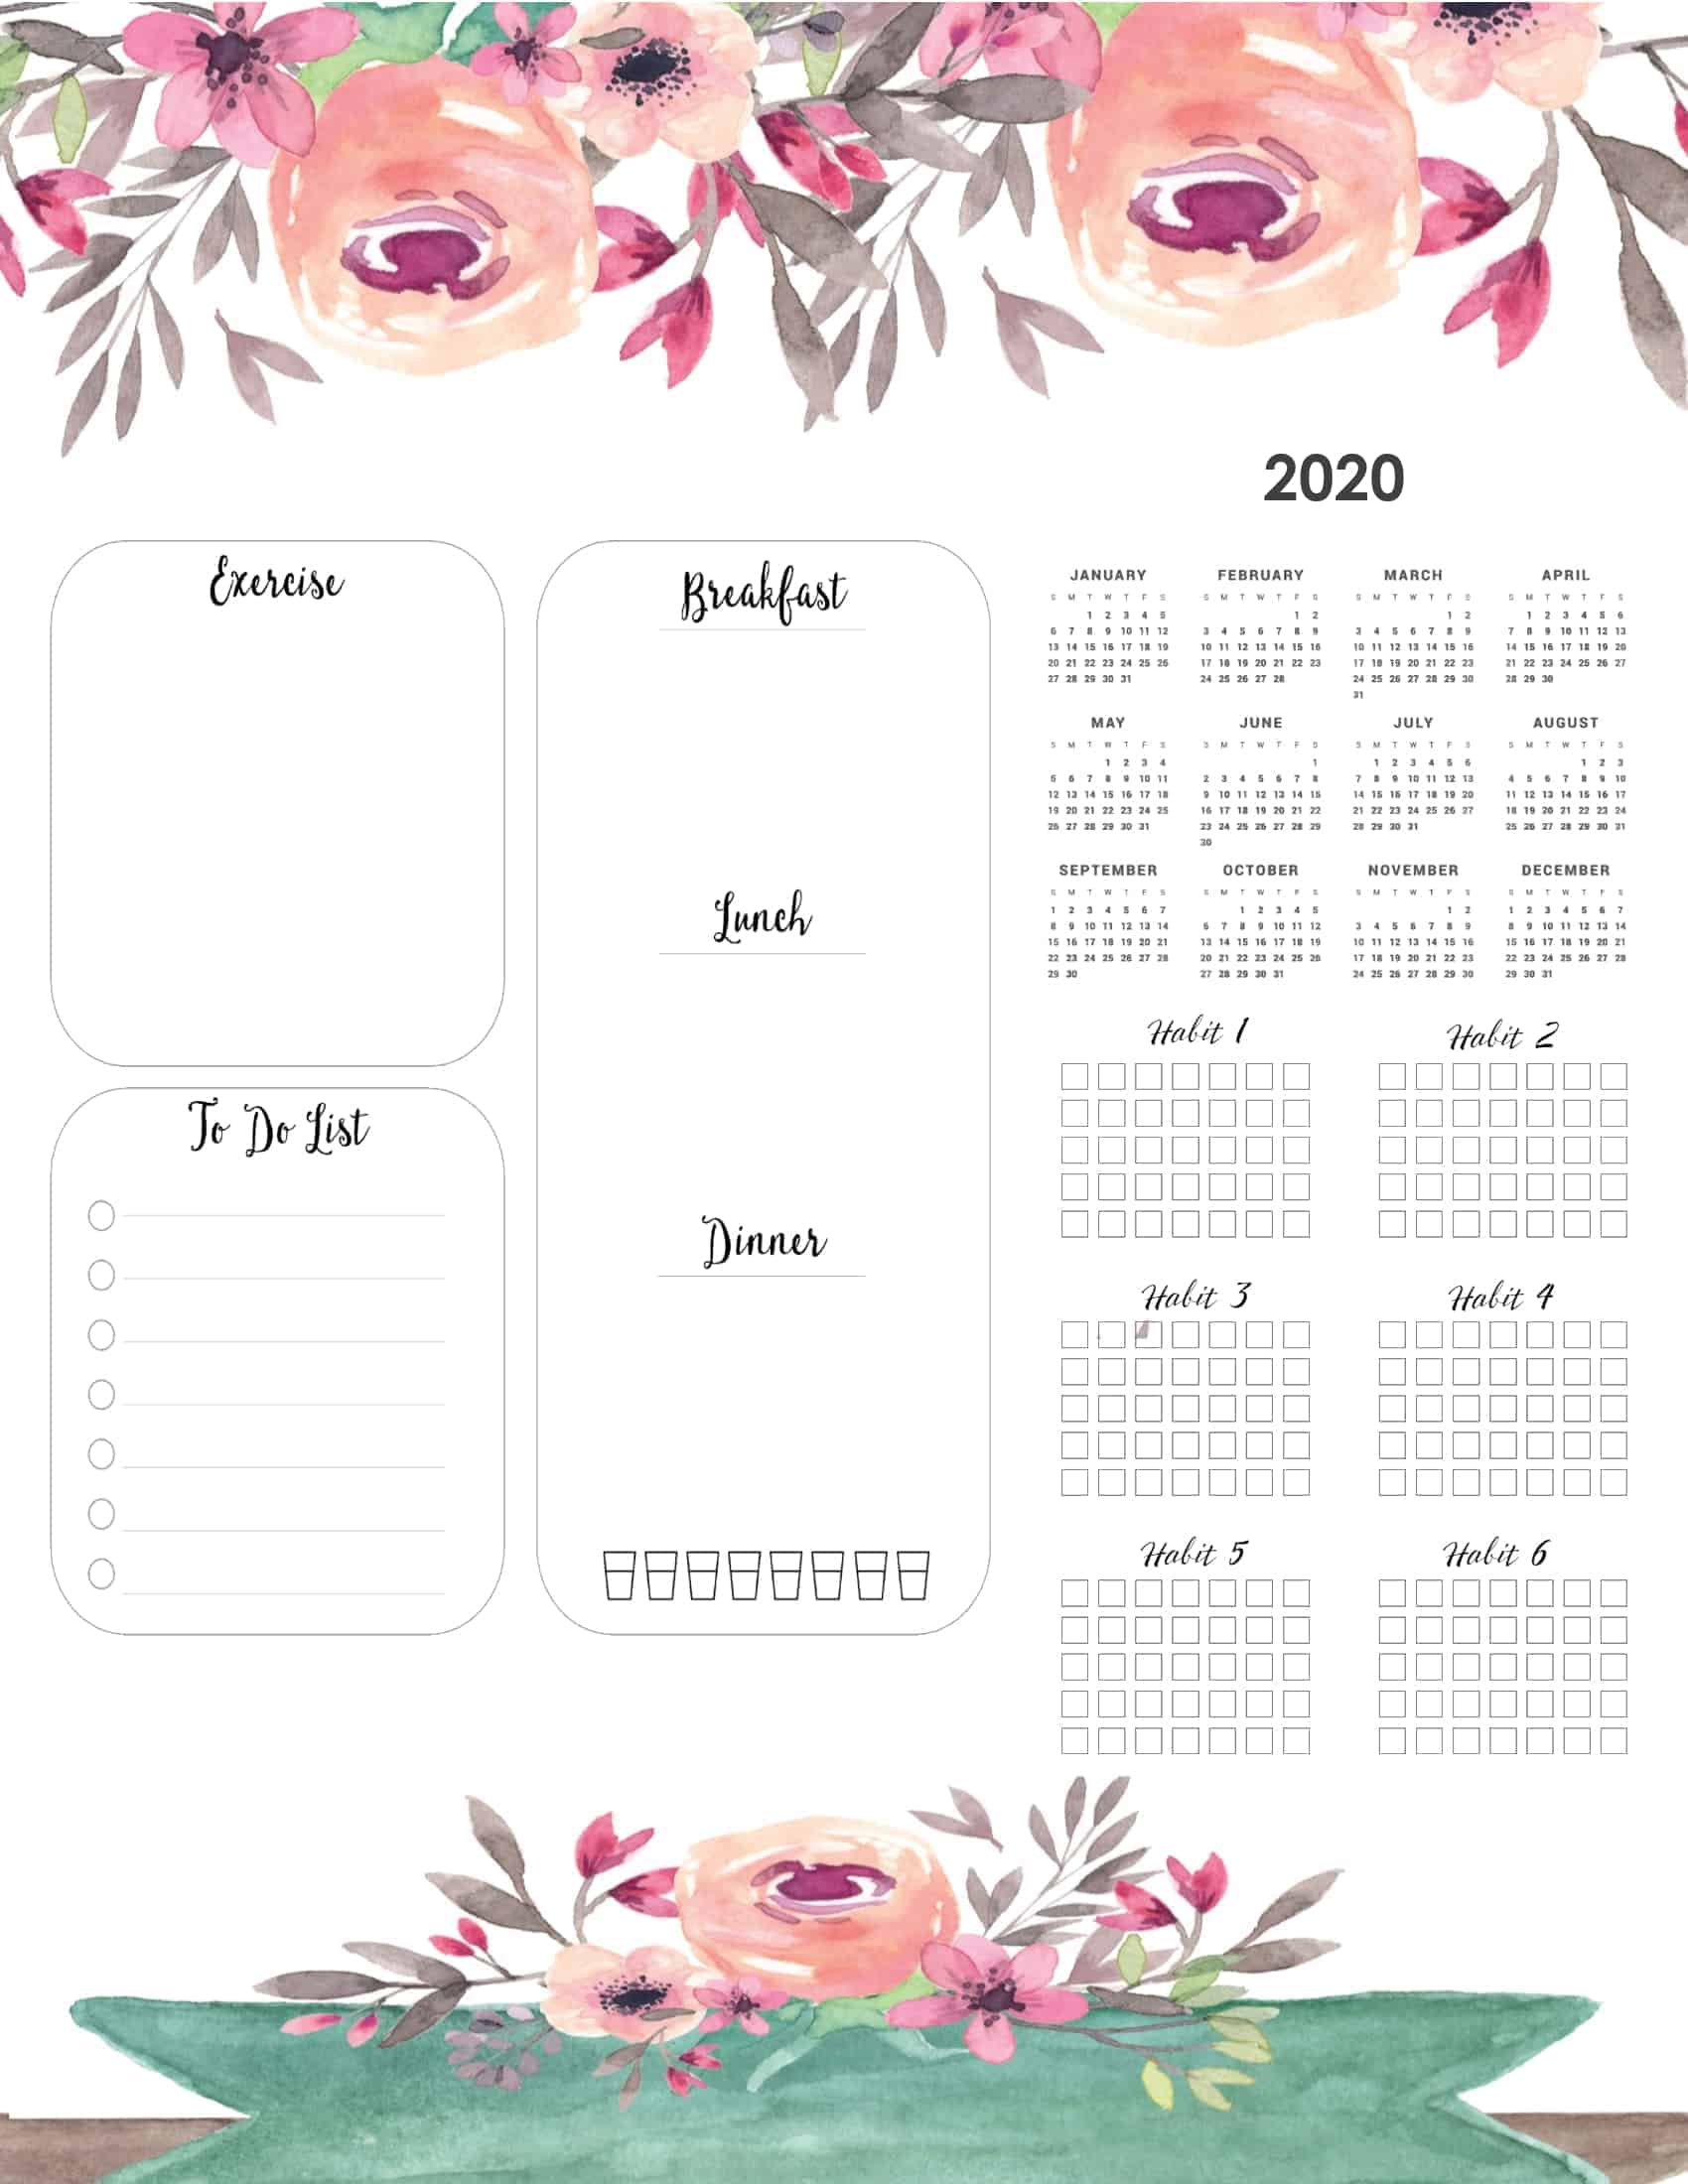 Year At A Glance Calendar Template  Nixtati.context.co intended for 2020 At A Glance Calendar Printable